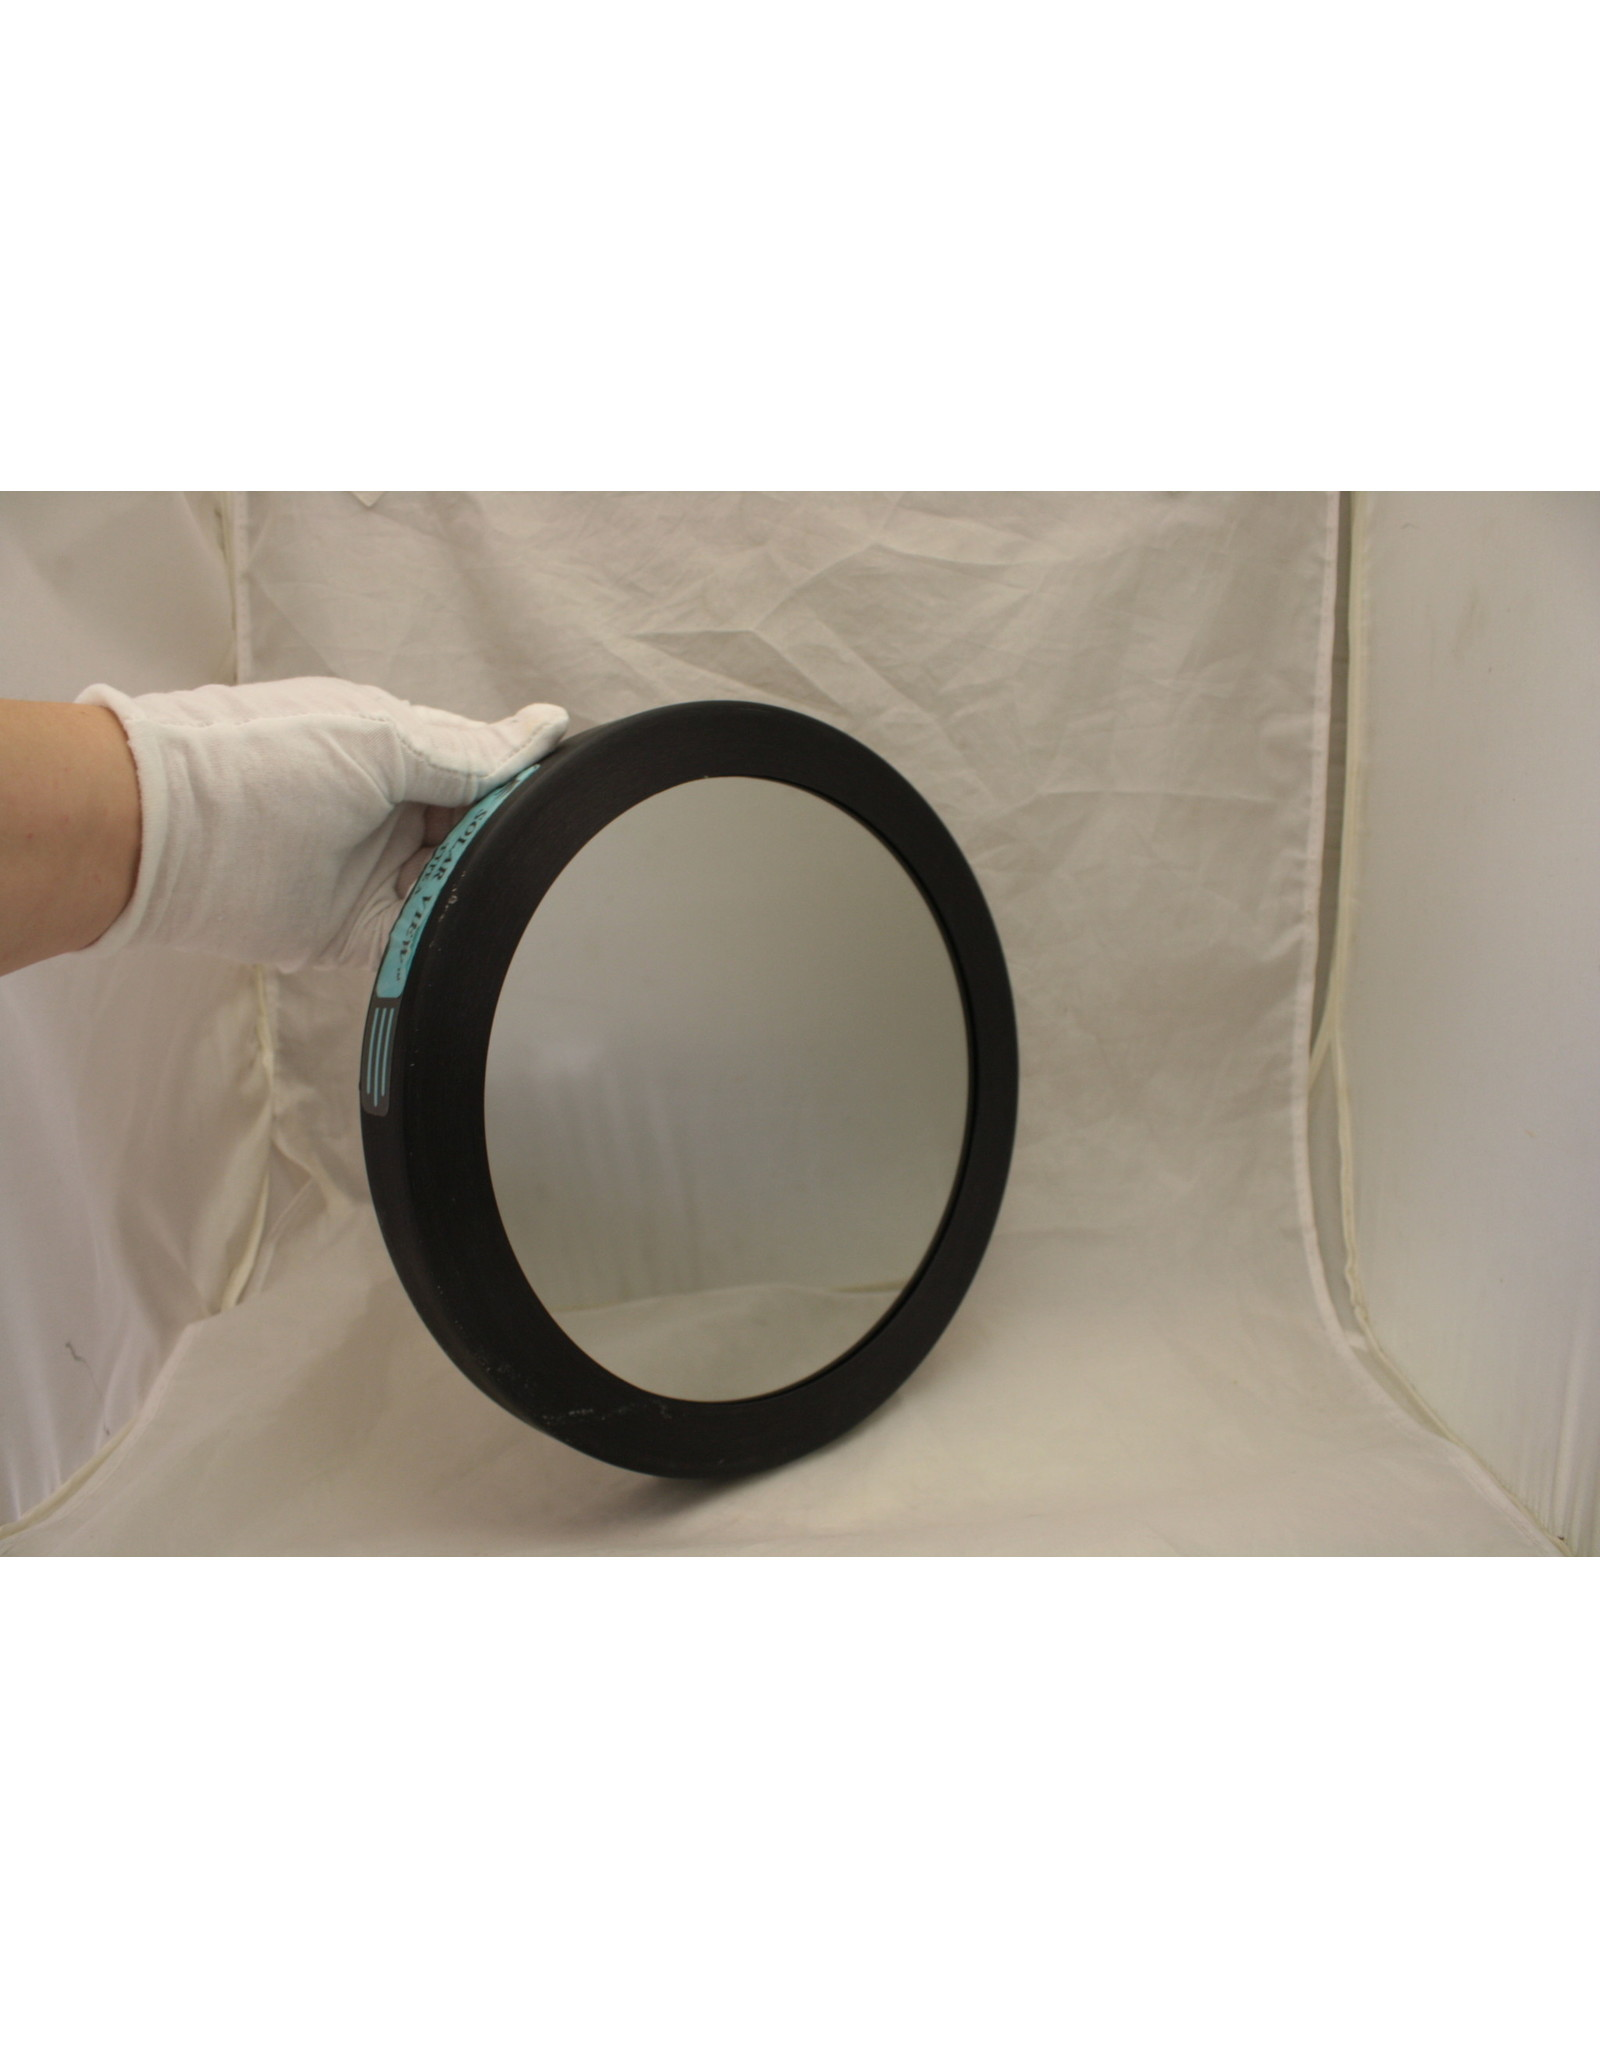 """Thousand Oaks S-9750 Glass Solar Filter (247mm\9.75″ O.D) for 8"""" SCT (Pre-owned)"""